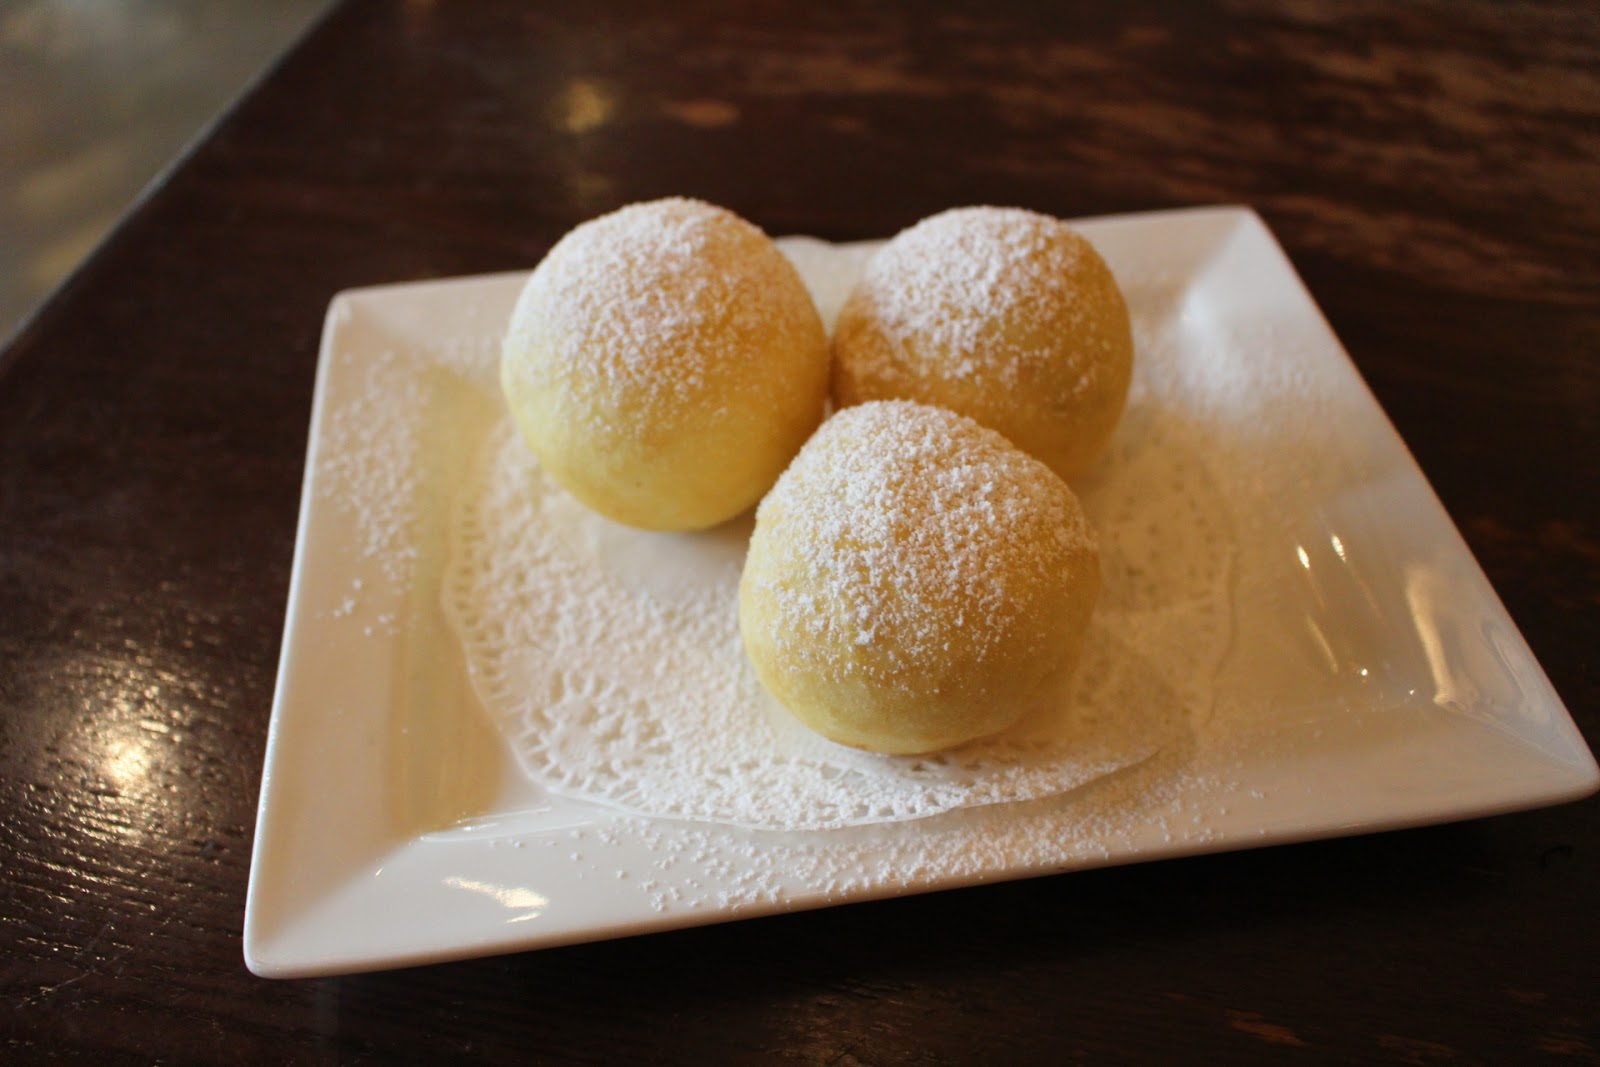 Signature soufflé egg white balls stuffed with red bean and banana